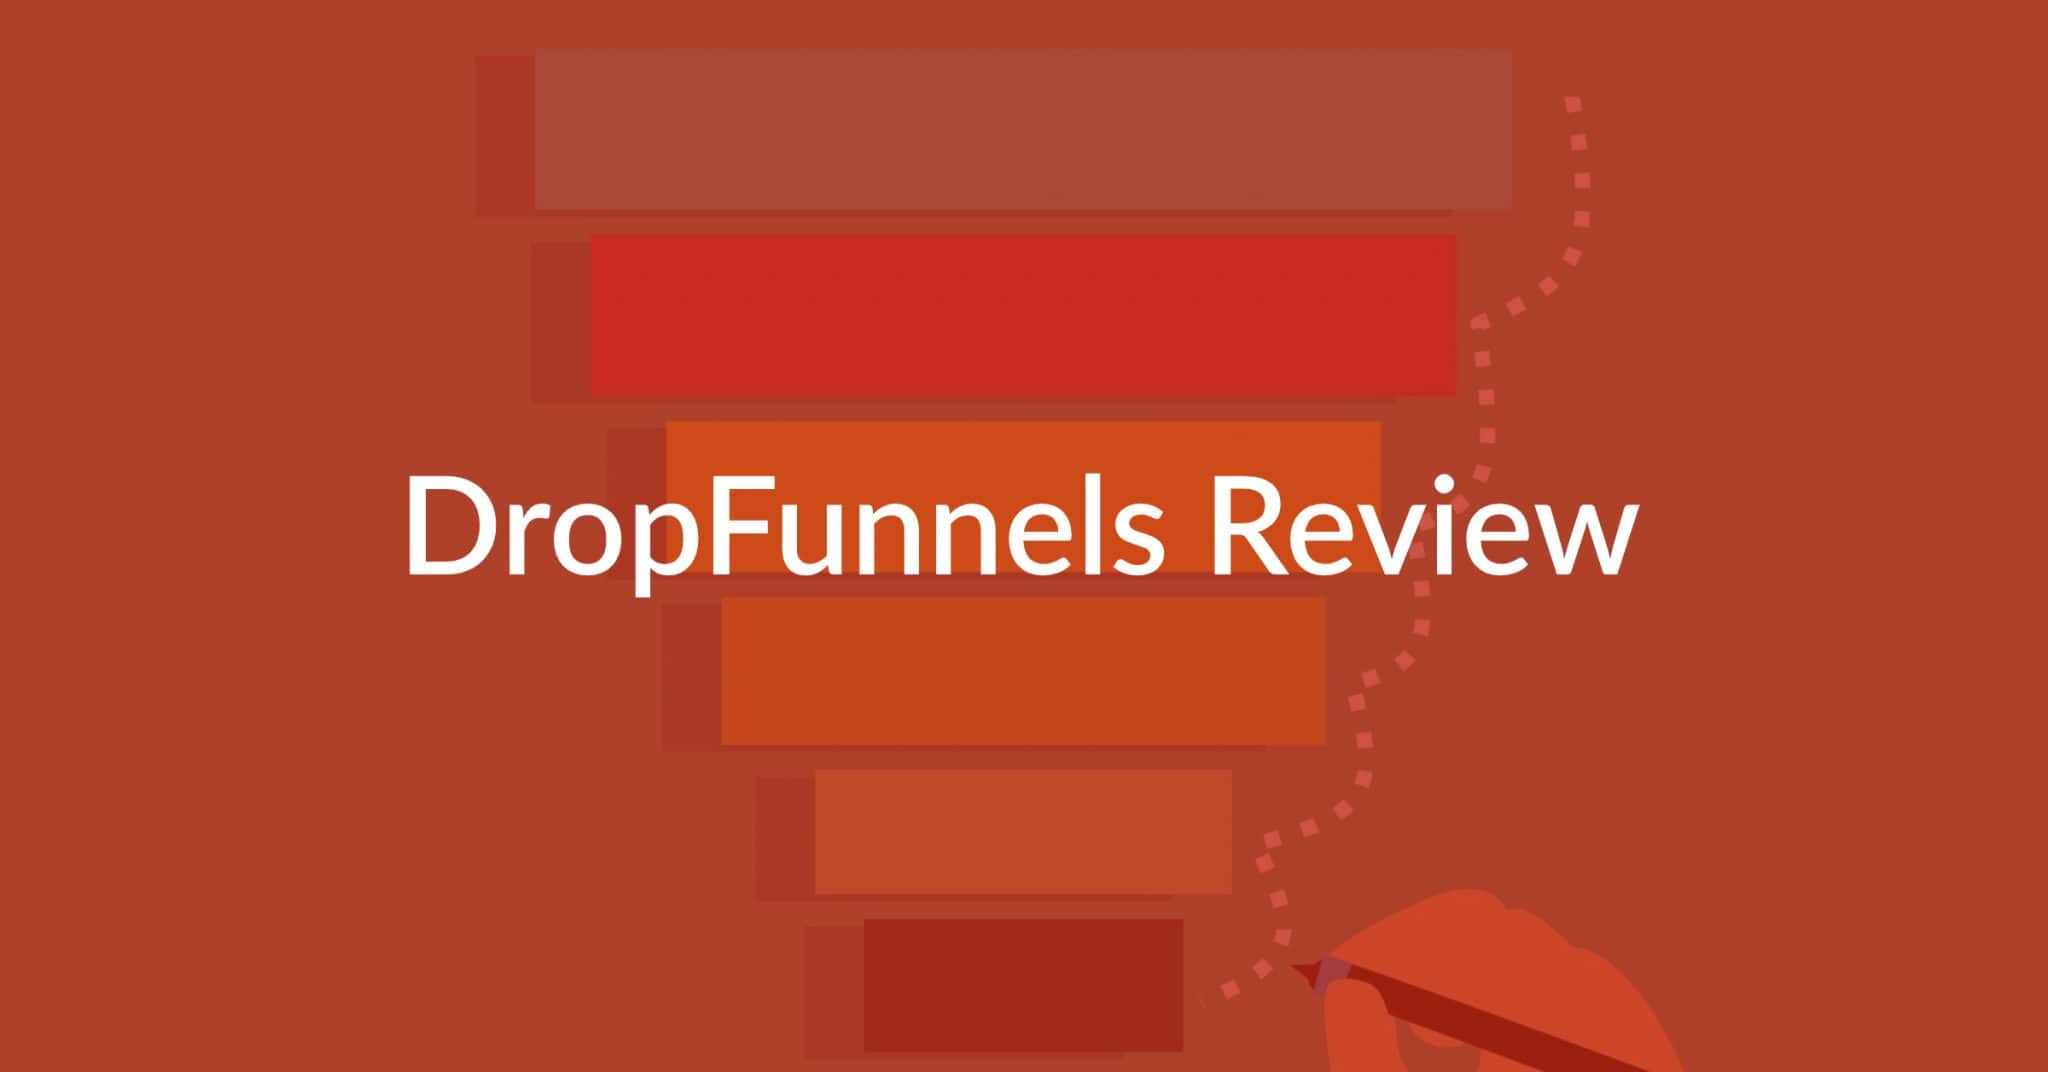 DropFunnels Review: Epic Funnel Builder or Overhyped?